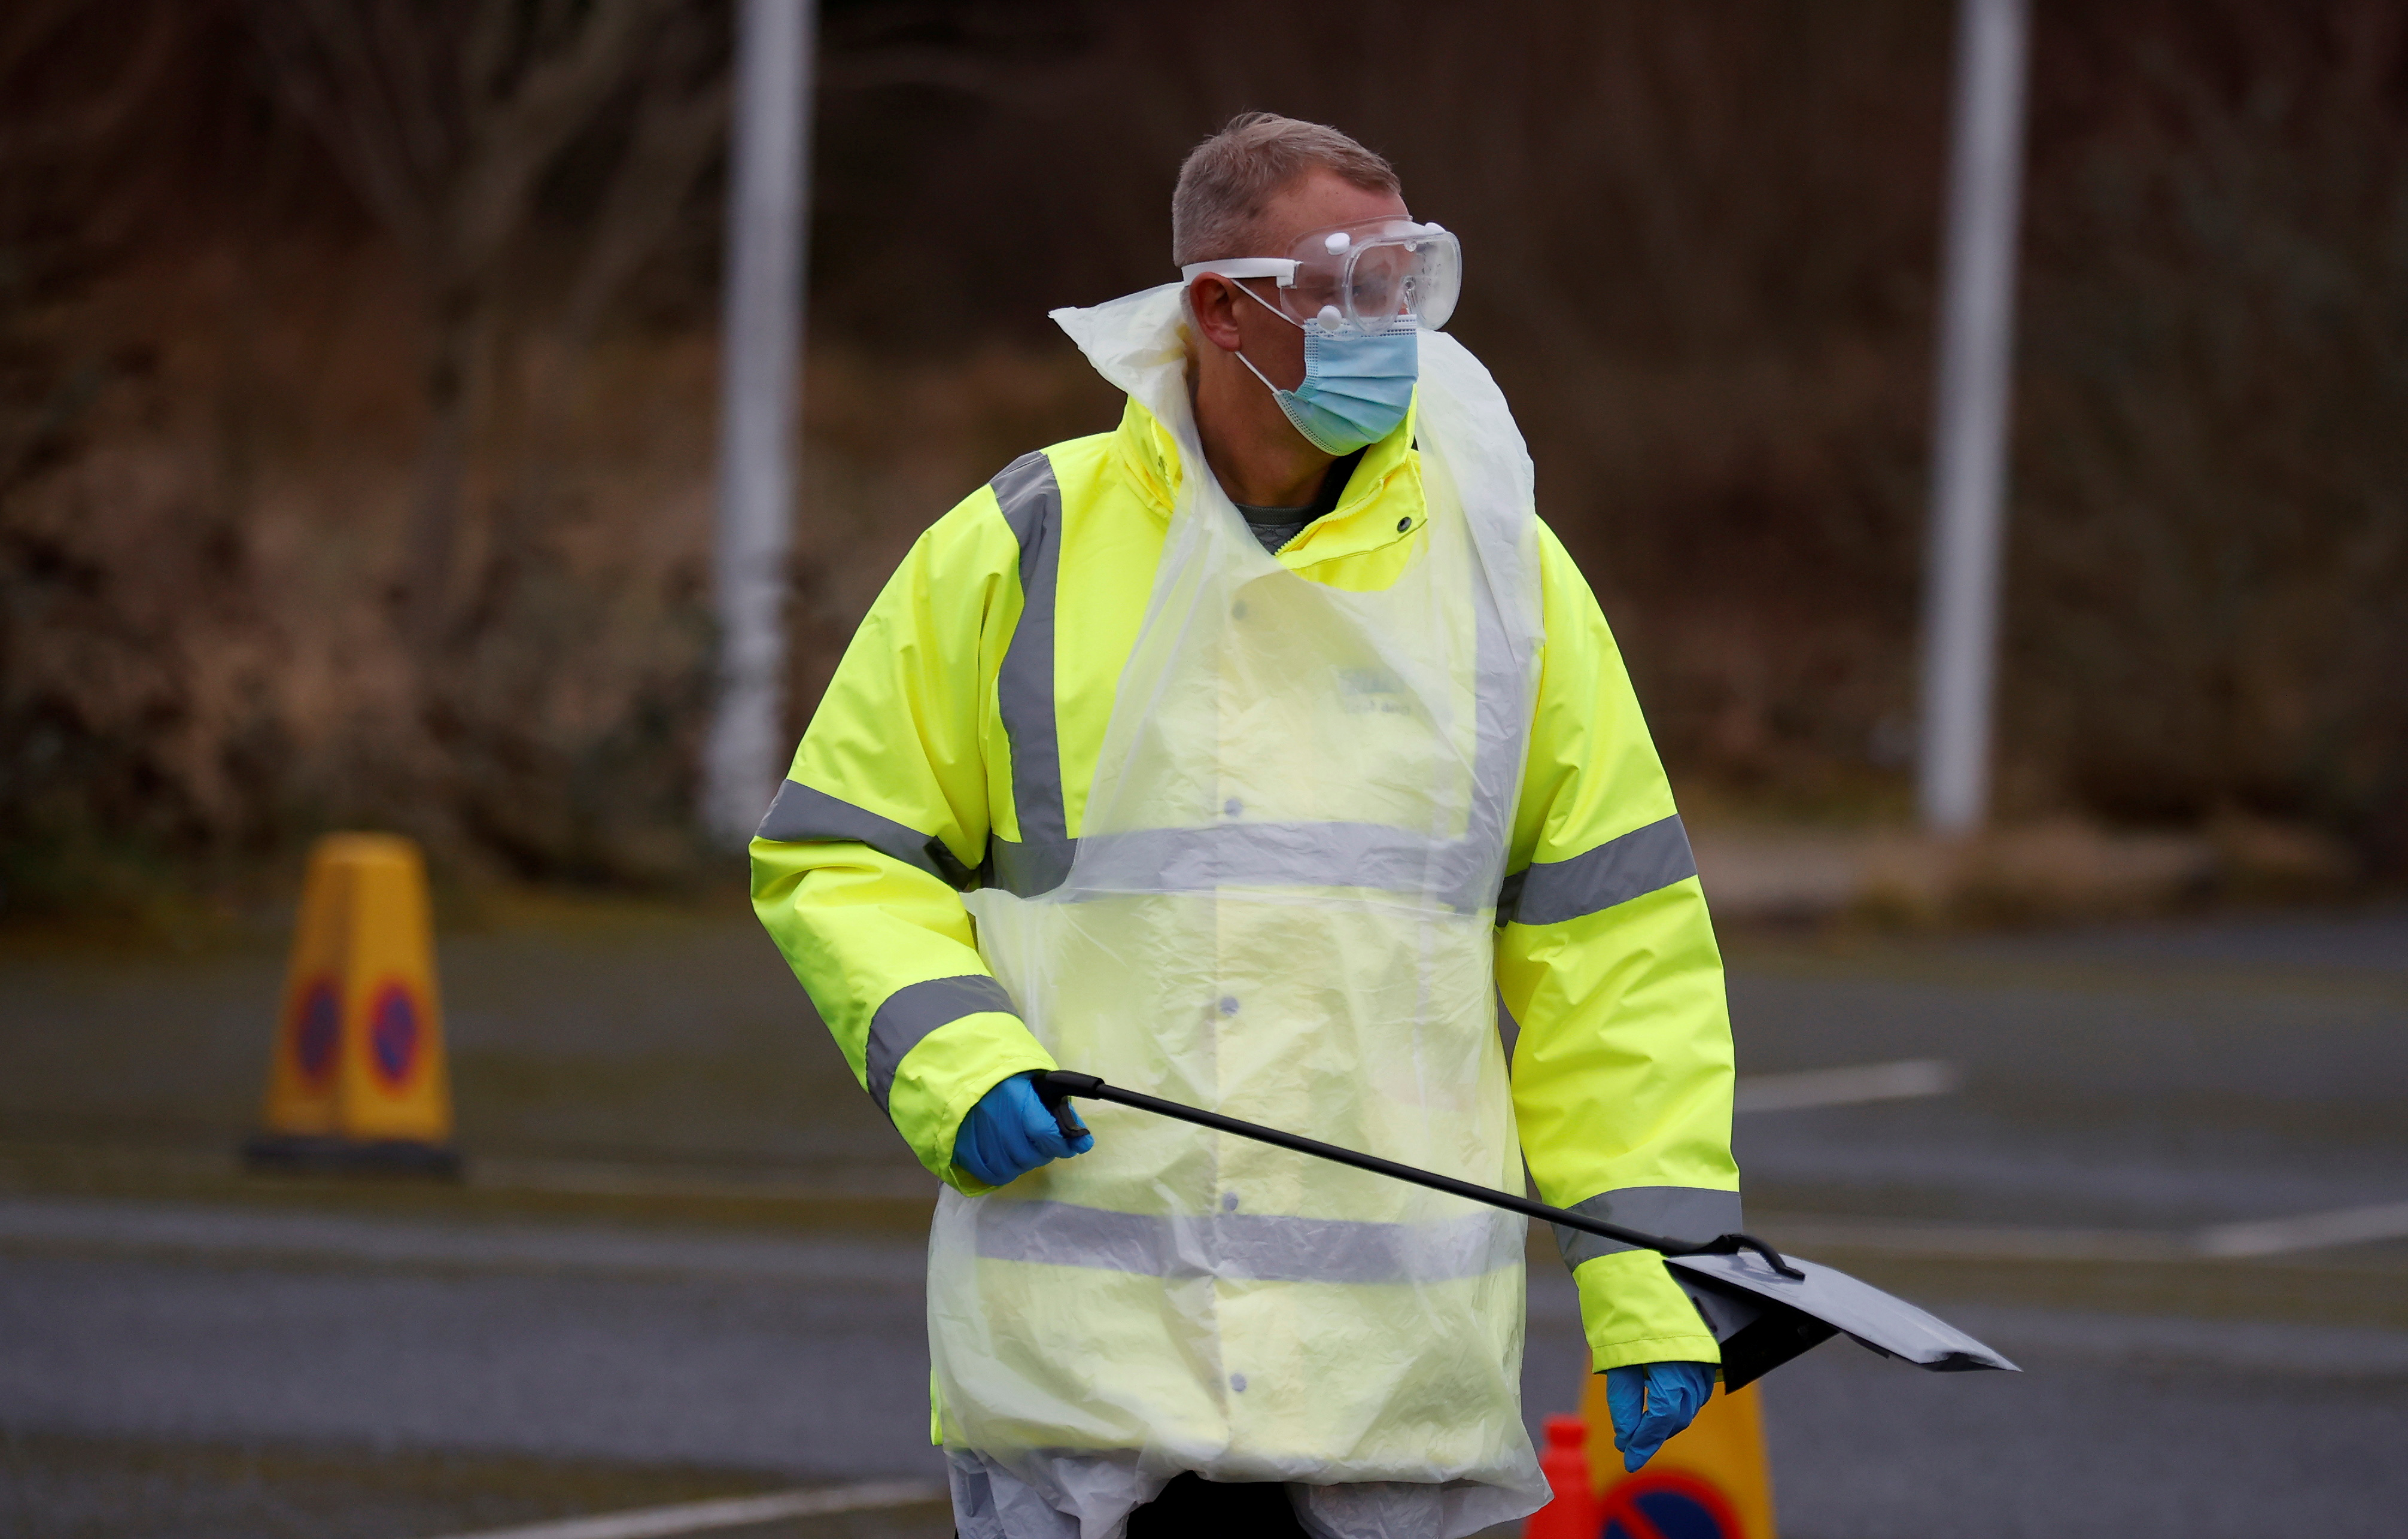 A member of NHS Test and Trace staff carries a testing kit as they arrive at a mobile testing centre amid the outbreak of the coronavirus disease (COVID-19) in Southport, Britain, February 3, 2021. REUTERS/Phil Noble